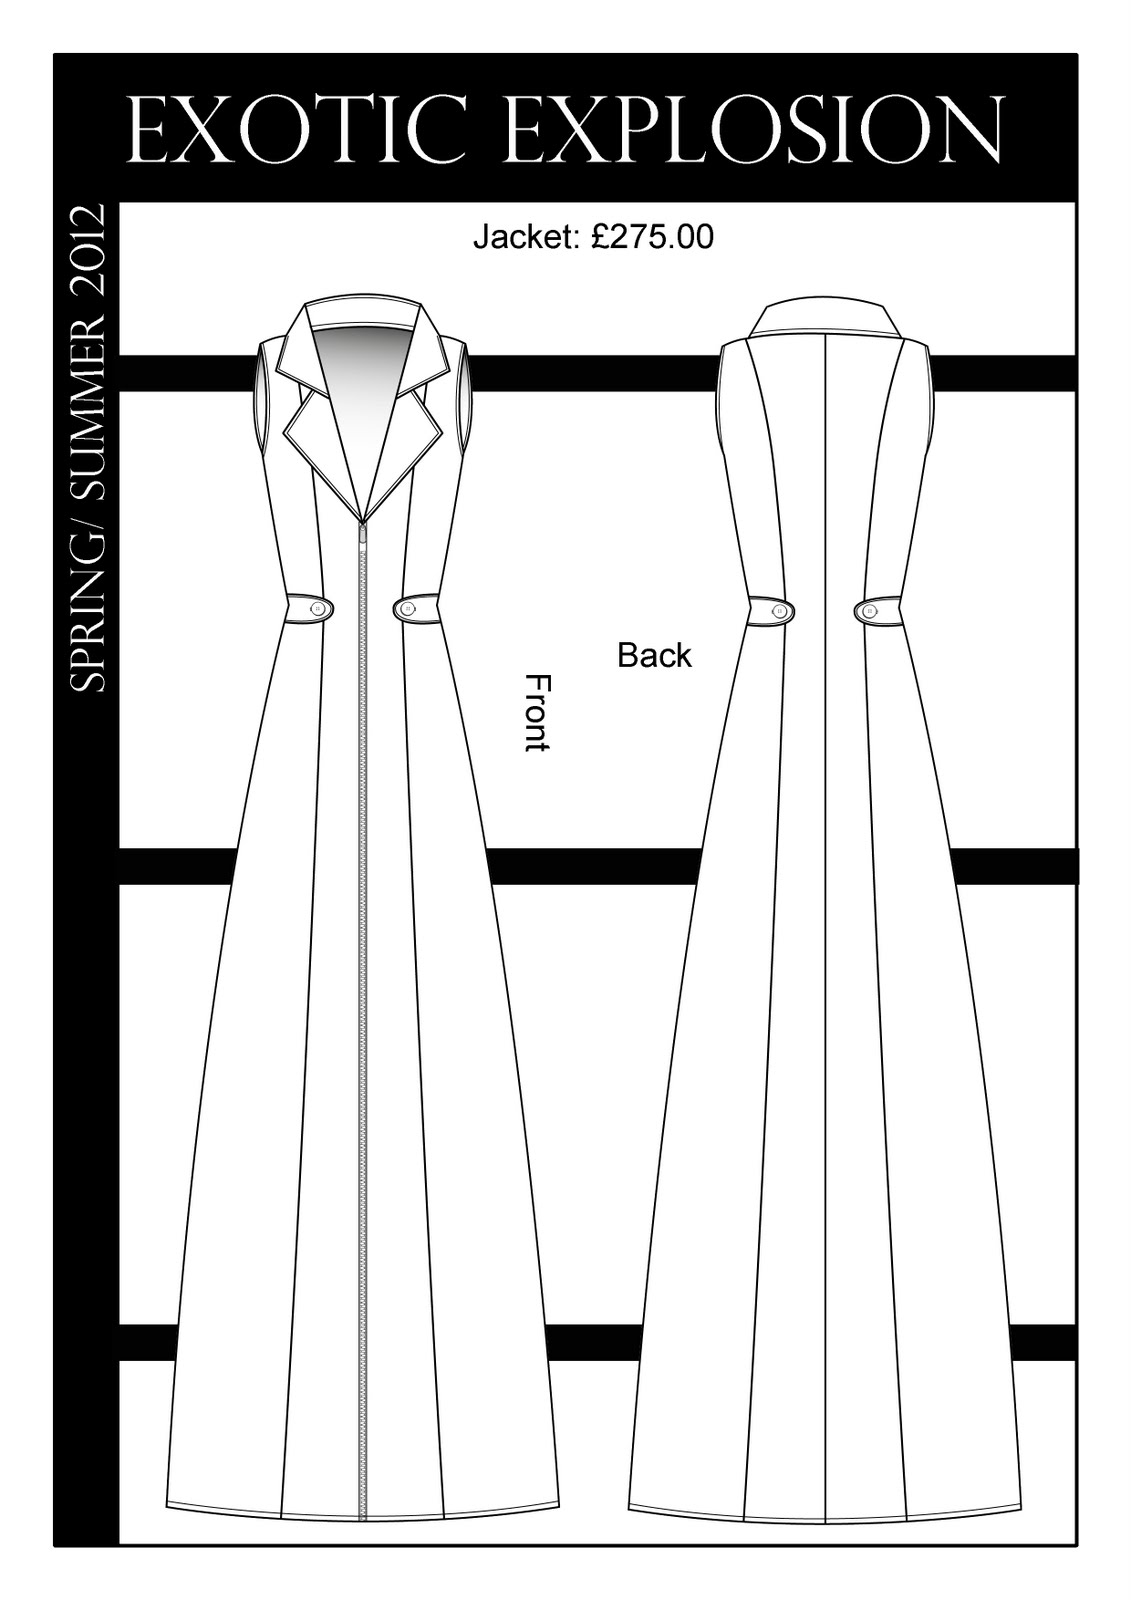 Staxofun wordpress besides 302181 Mannequin Silhouette ClipArt besides Make Your Own Wedding Monogram further Sketch Ideas 08 also FREE Chibi Furry Couple Base 425191083. on final watermark